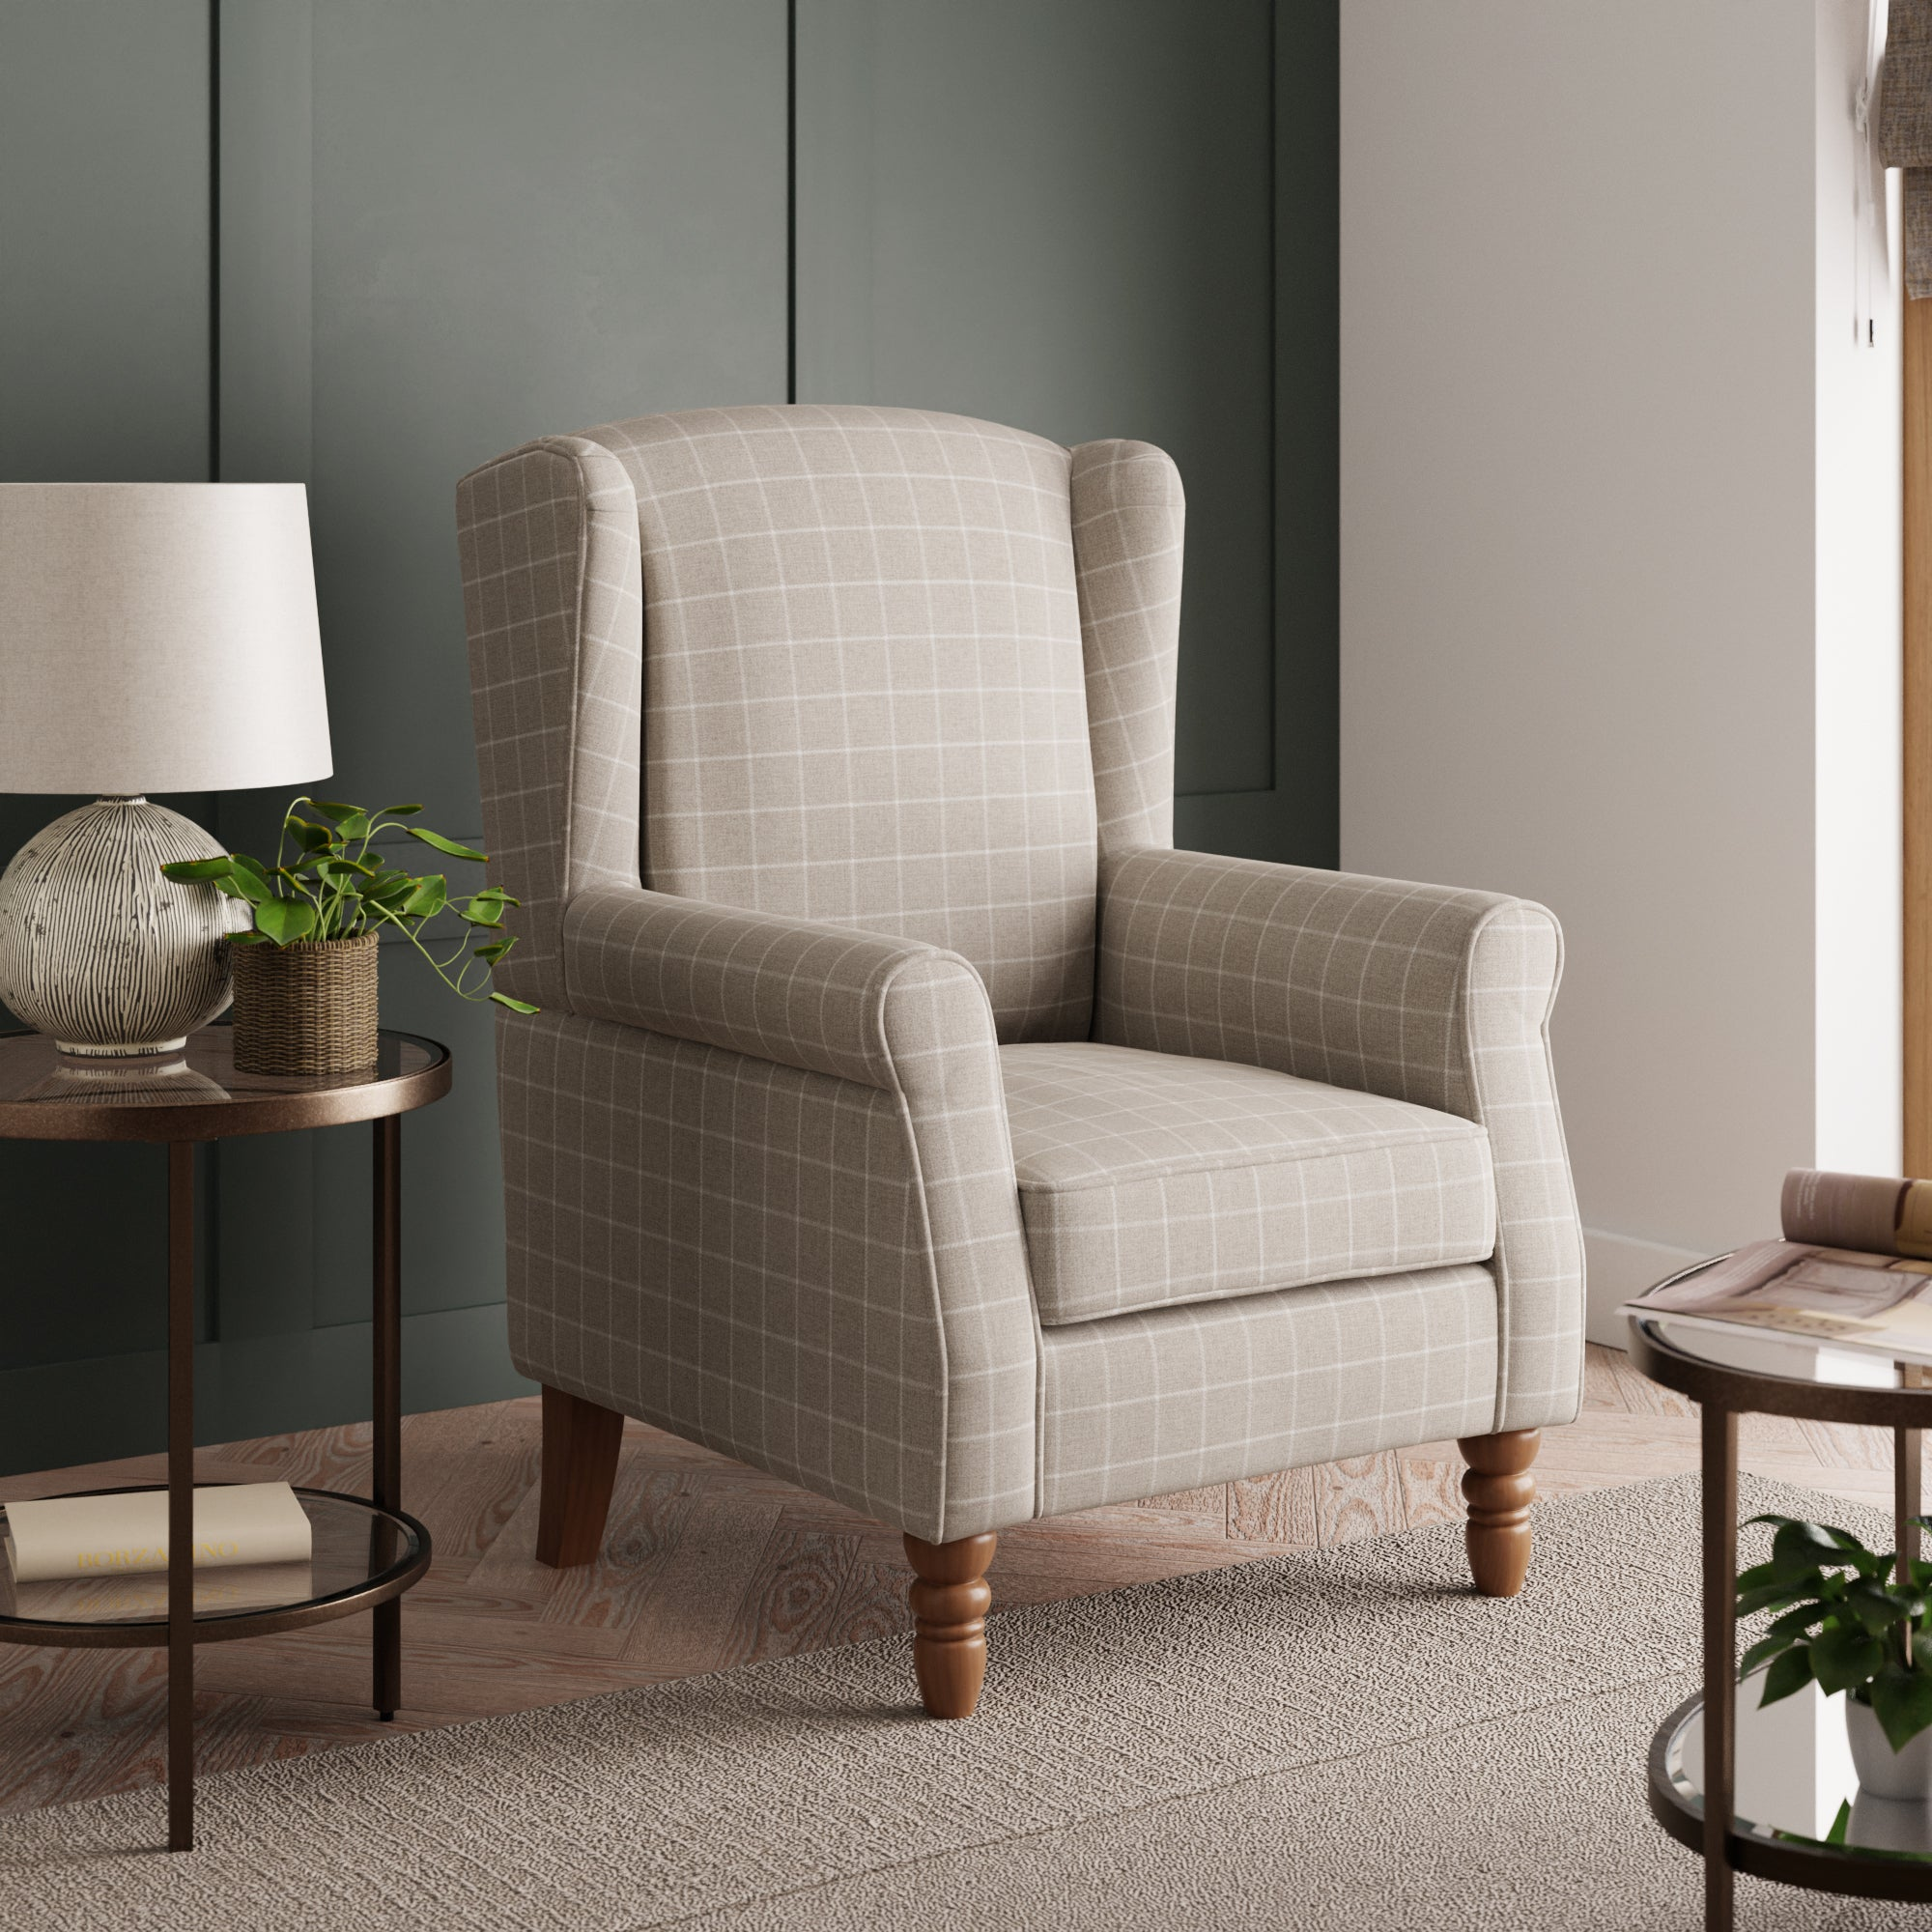 Oswald Window Pane Check Wingback Armchair - Natural Brown and White